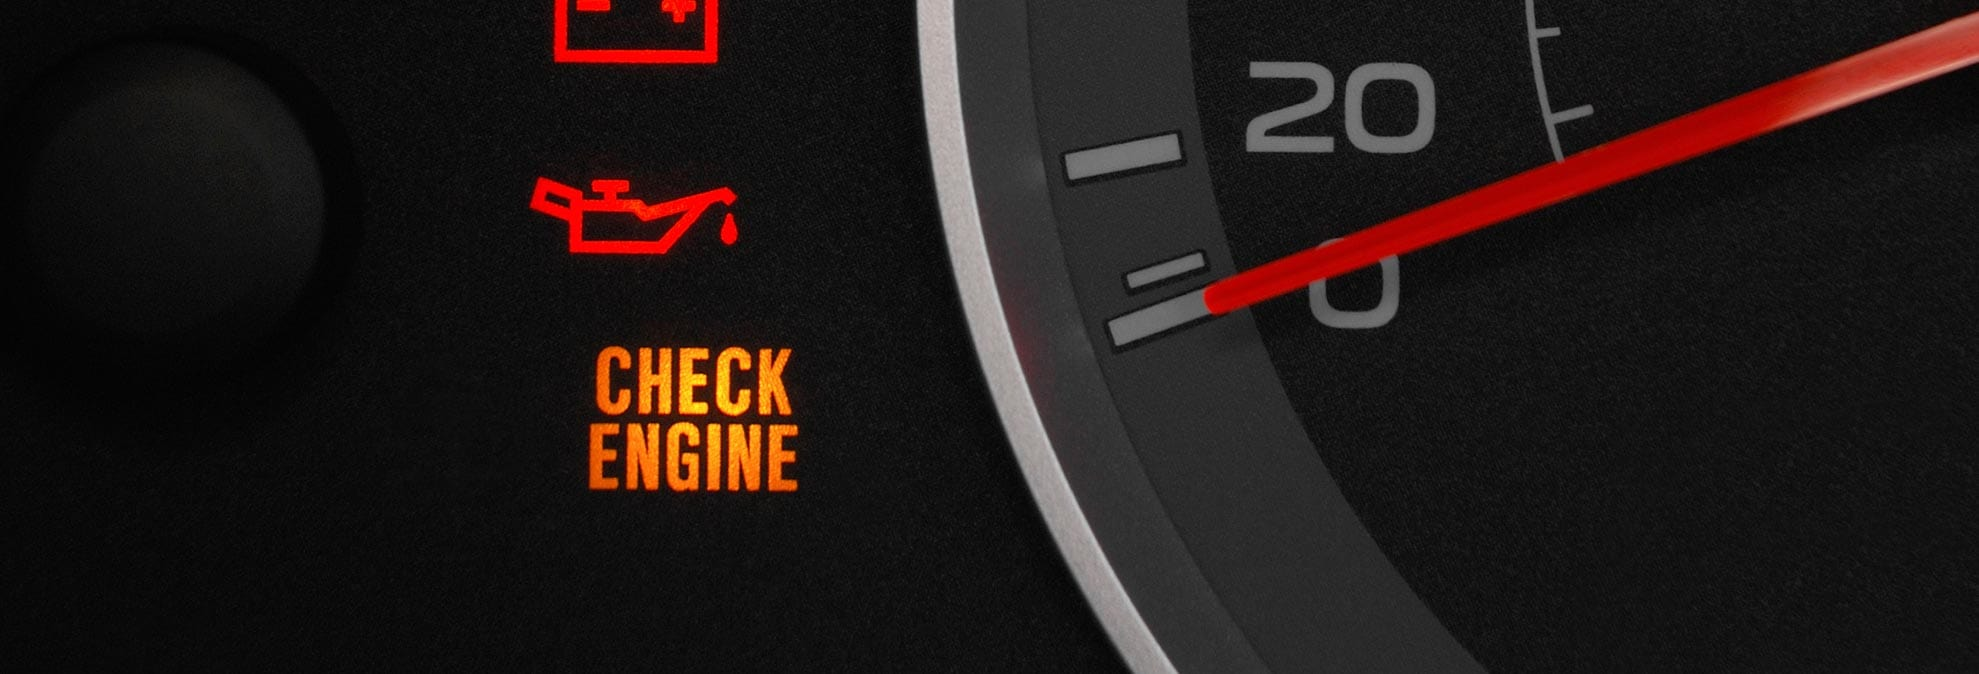 CR Cars Hero What Does Check Engine Light Mean 04 16 how to protect your car from rodents chewing wires consumer  at eliteediting.co